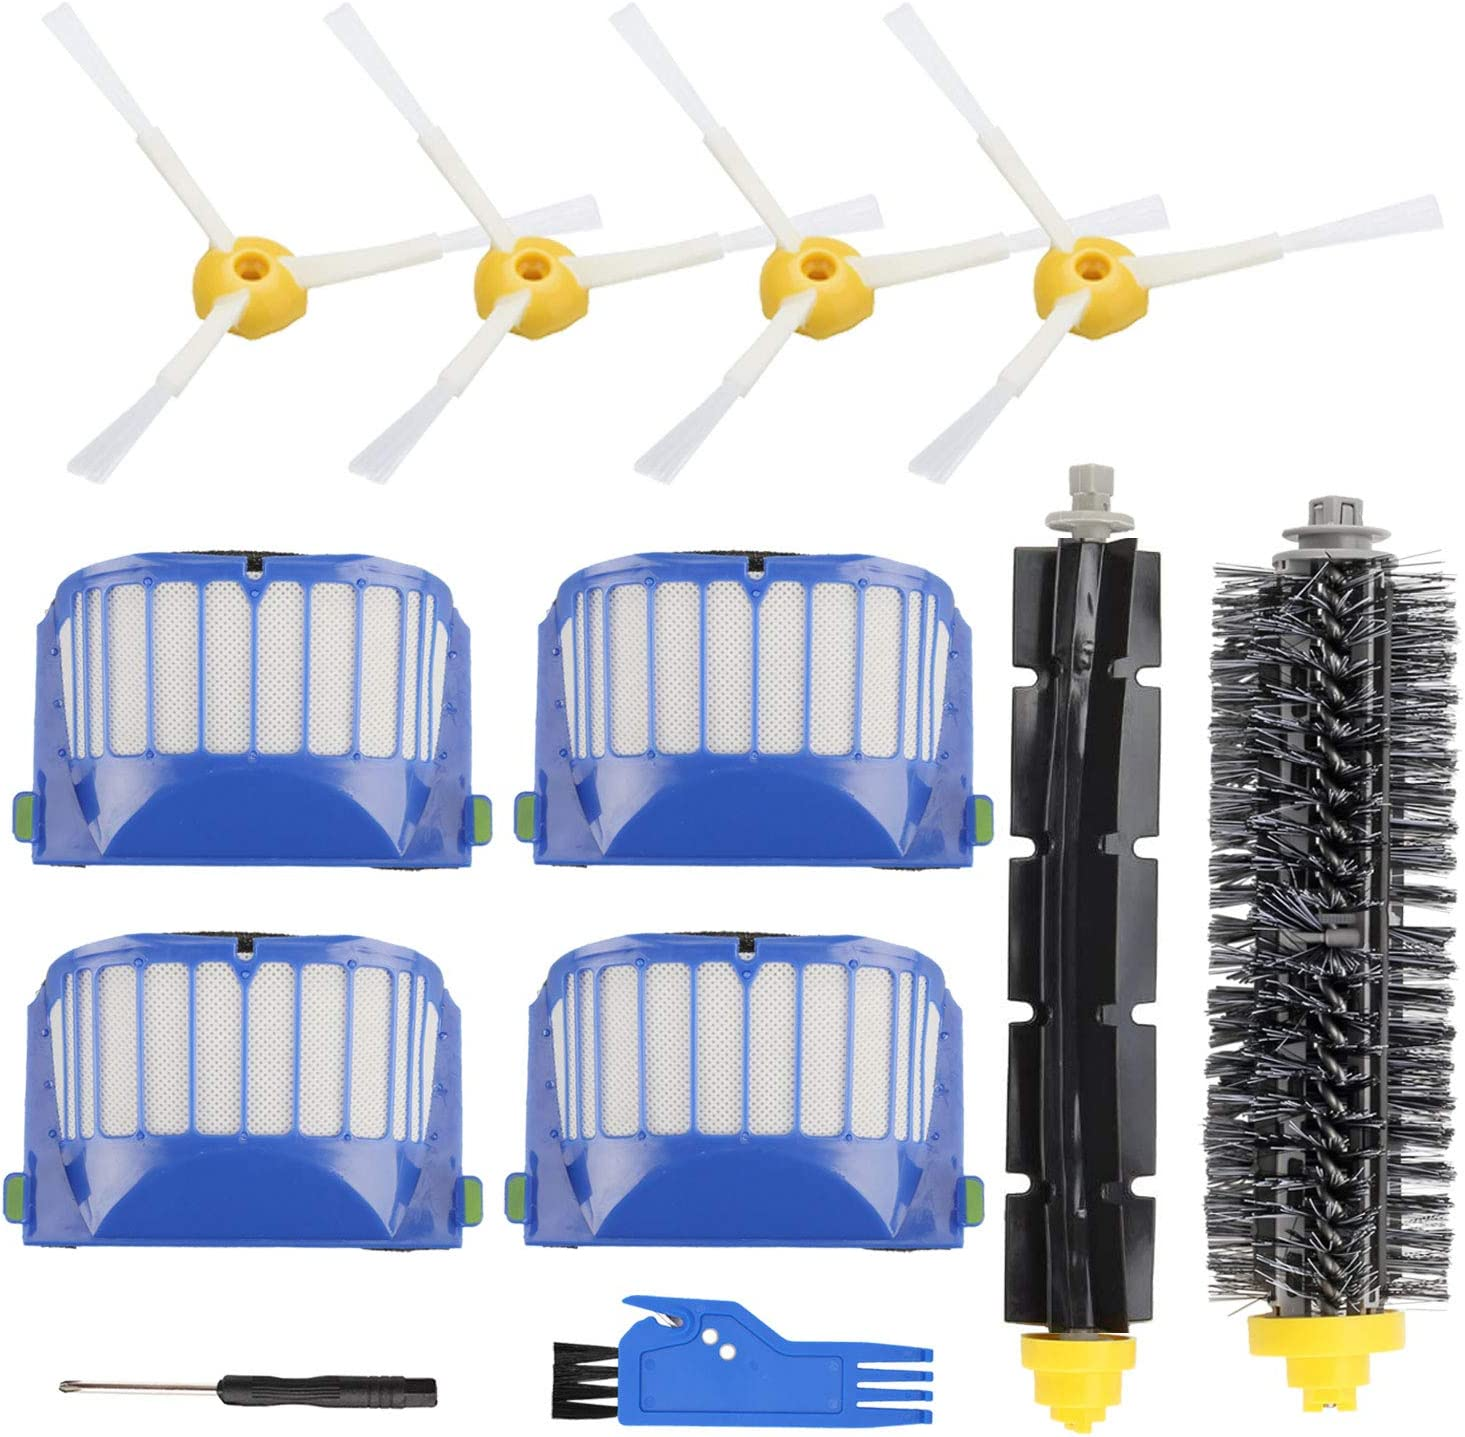 Replacement Parts Accessory for iRobot Roomba 600 500 Series 695 690 680 660 651 650 630 620 614 610 595 585 564 552 Vacuum Cleaner Replenishment Kit, 4 Filter 4 Side Brush 1 Bristle & 1 Beater Brush